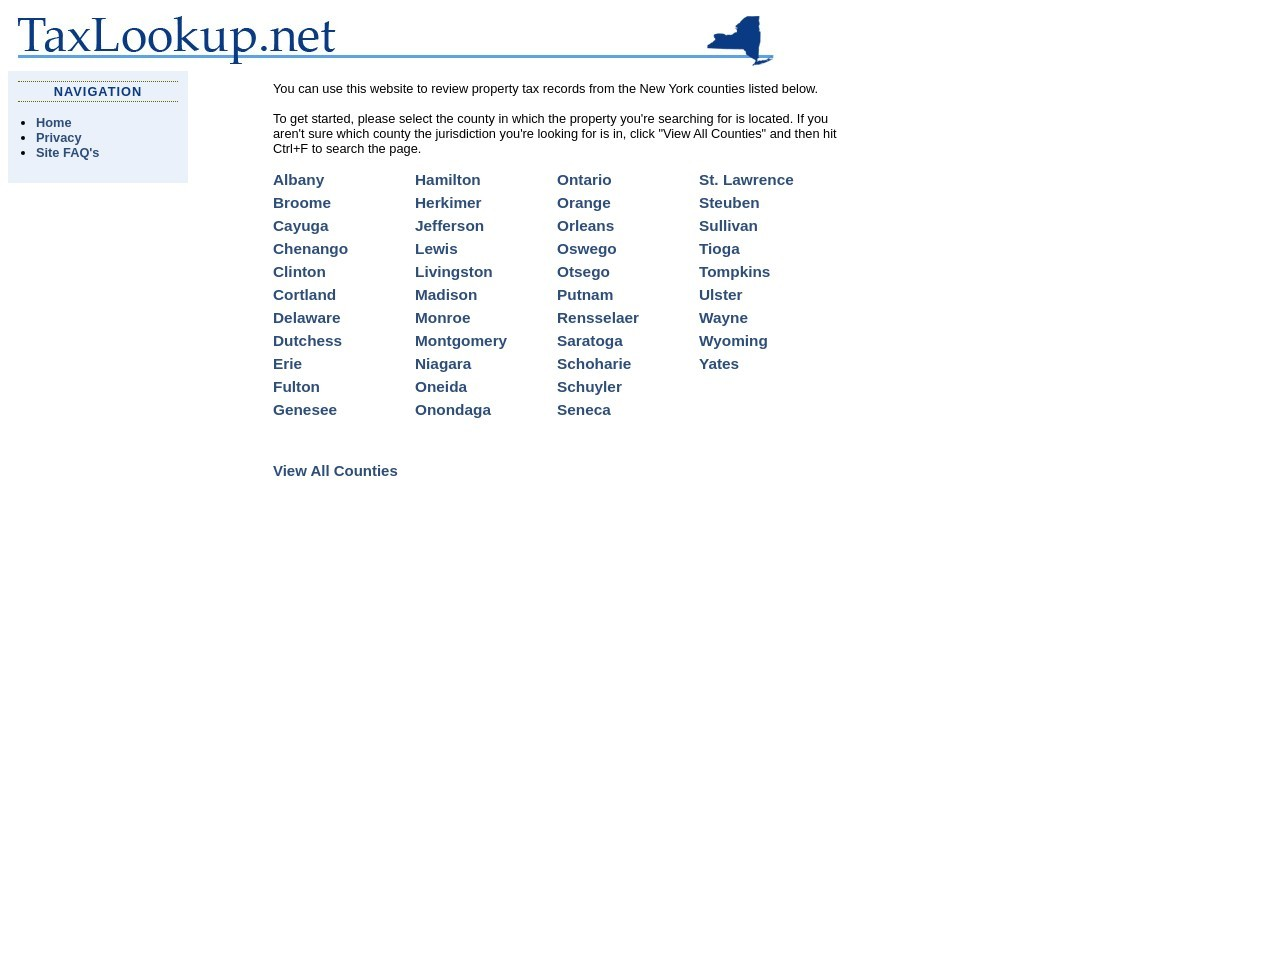 taxlookup.net